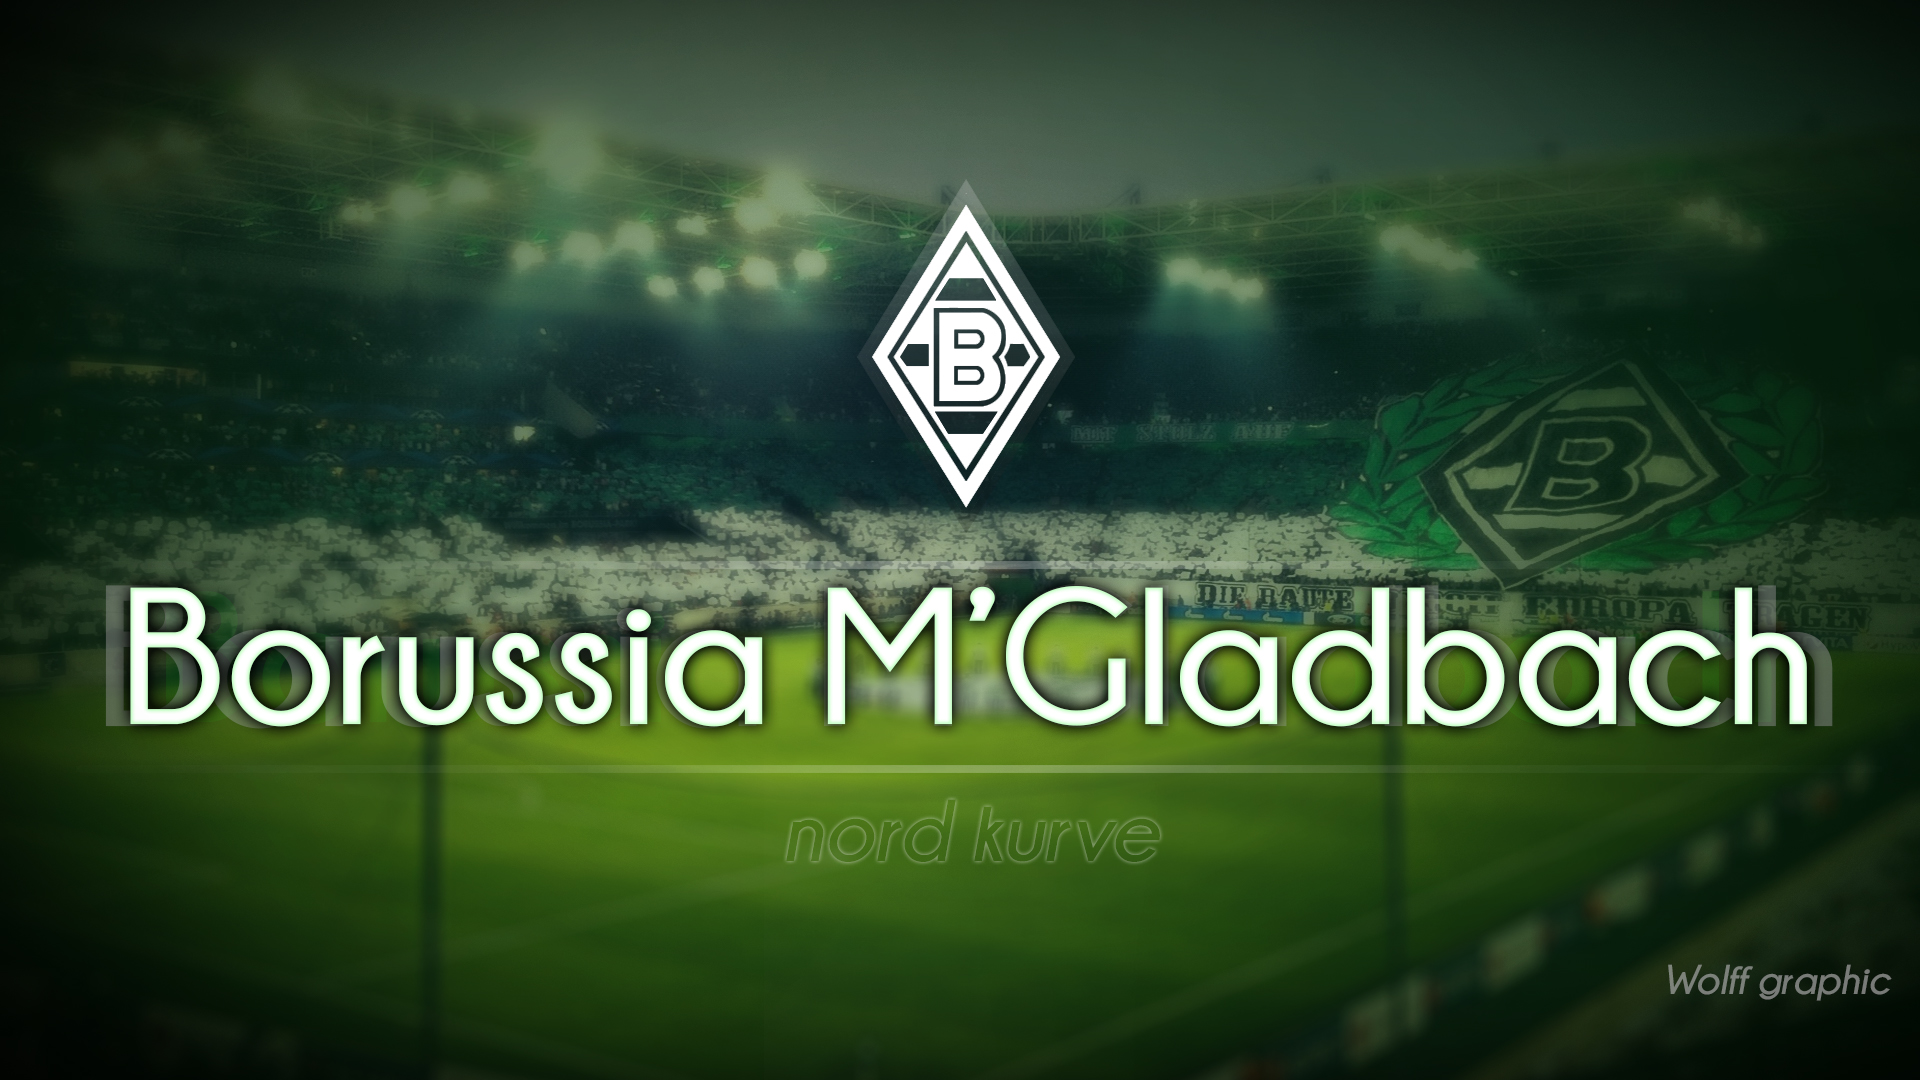 borussia_m_gladbach_wallpaper_by_wolff10